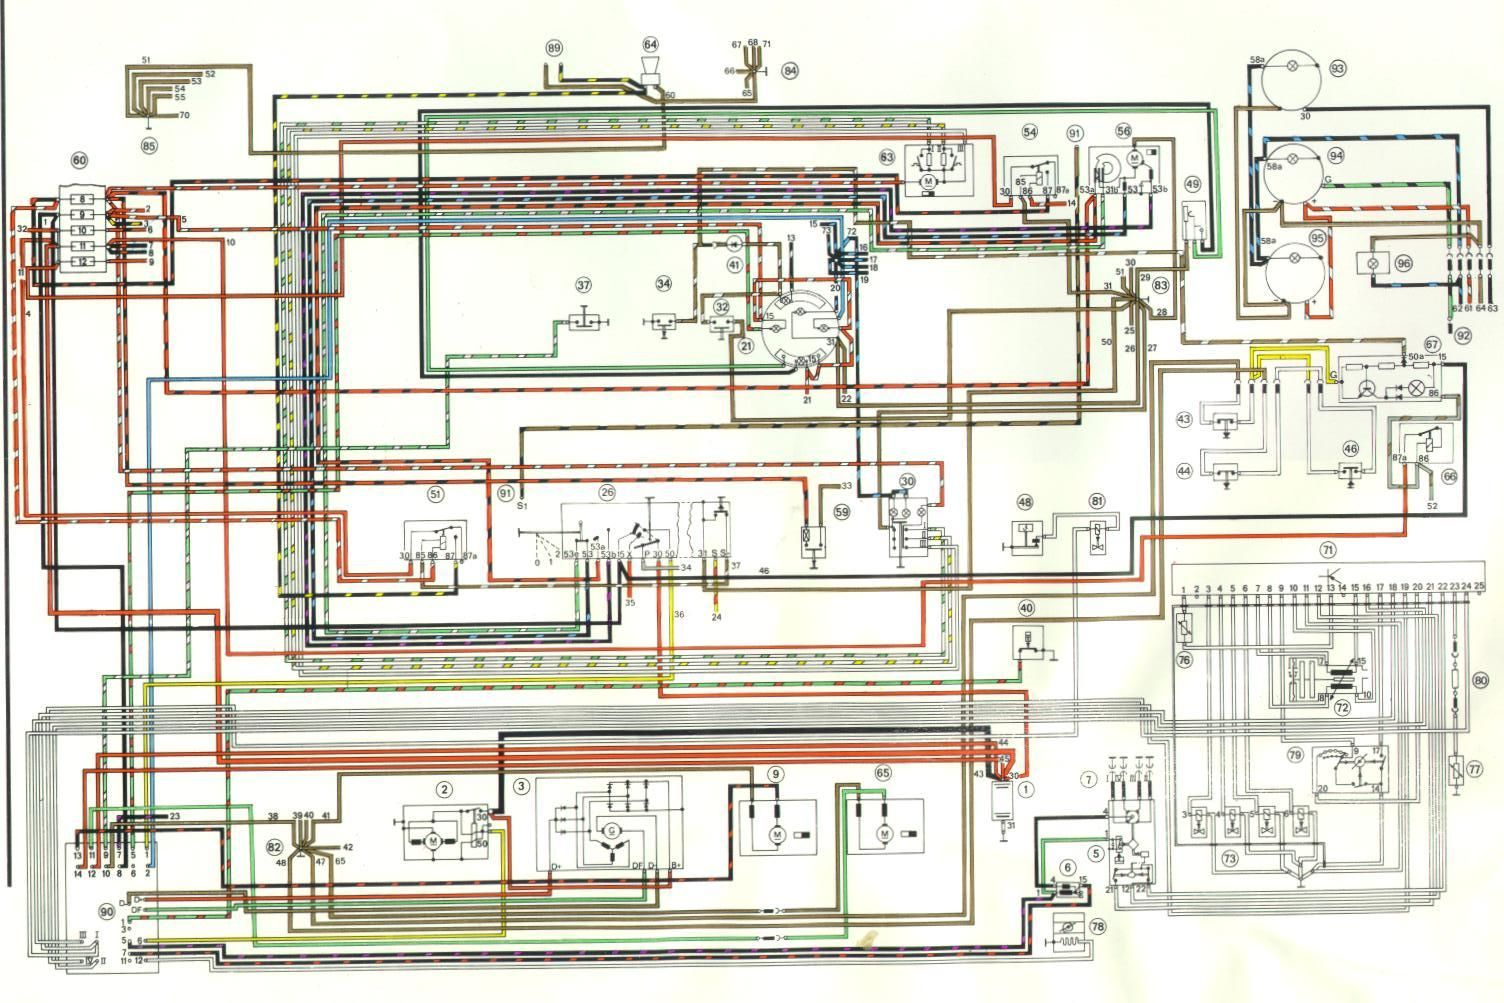 [WLLP_2054]   Porsche 914 Electrical Diagrams | Porsche 914, Porsche, Electrical diagram | Porsche 914 6 Wiring Diagram |  | Pinterest